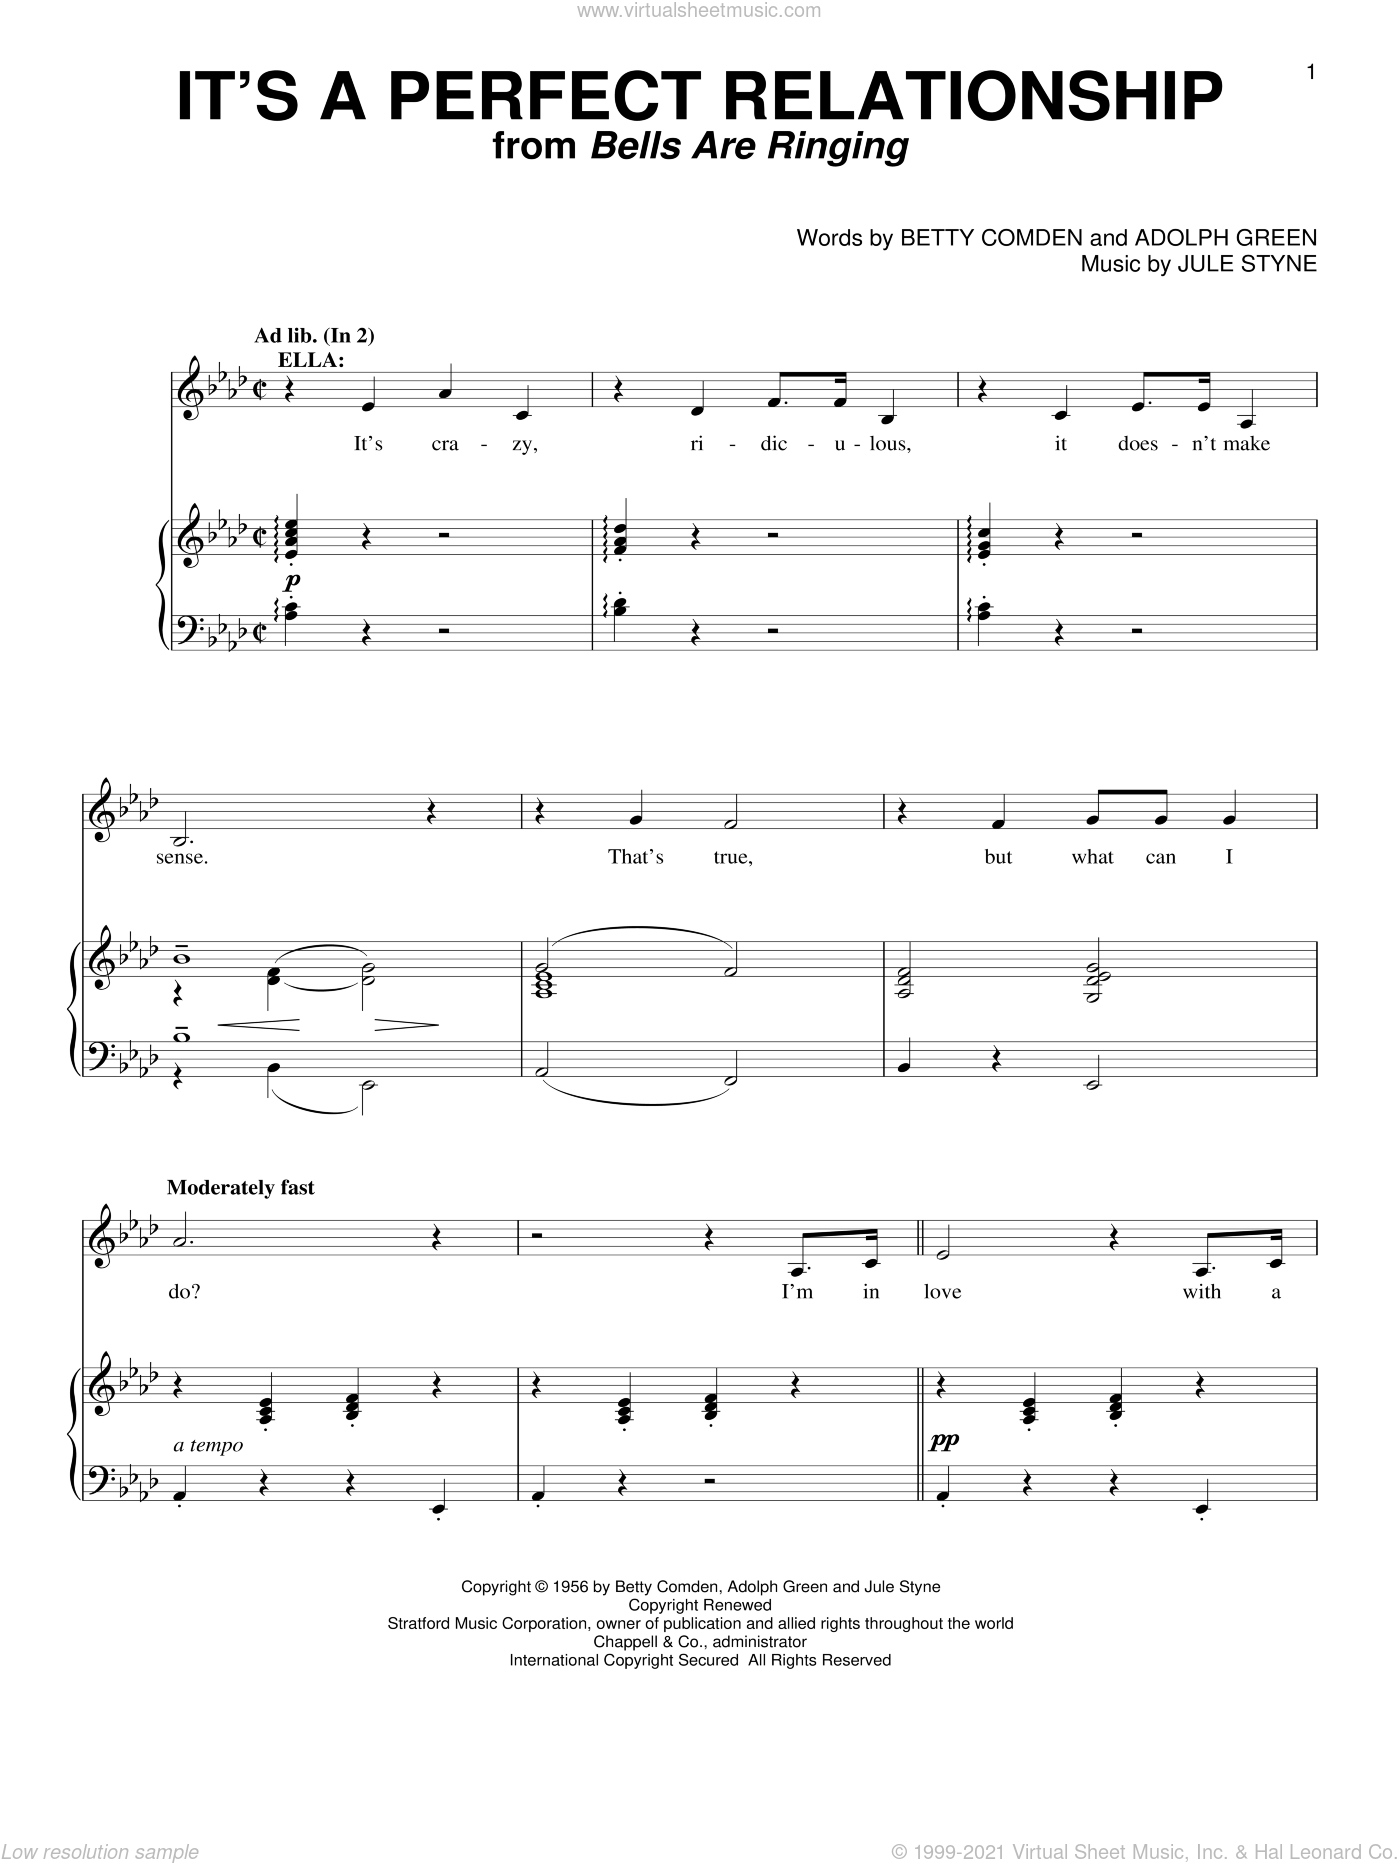 It's A Perfect Relationship sheet music for voice and piano by Betty Comden, Adolph Green and Jule Styne, intermediate skill level